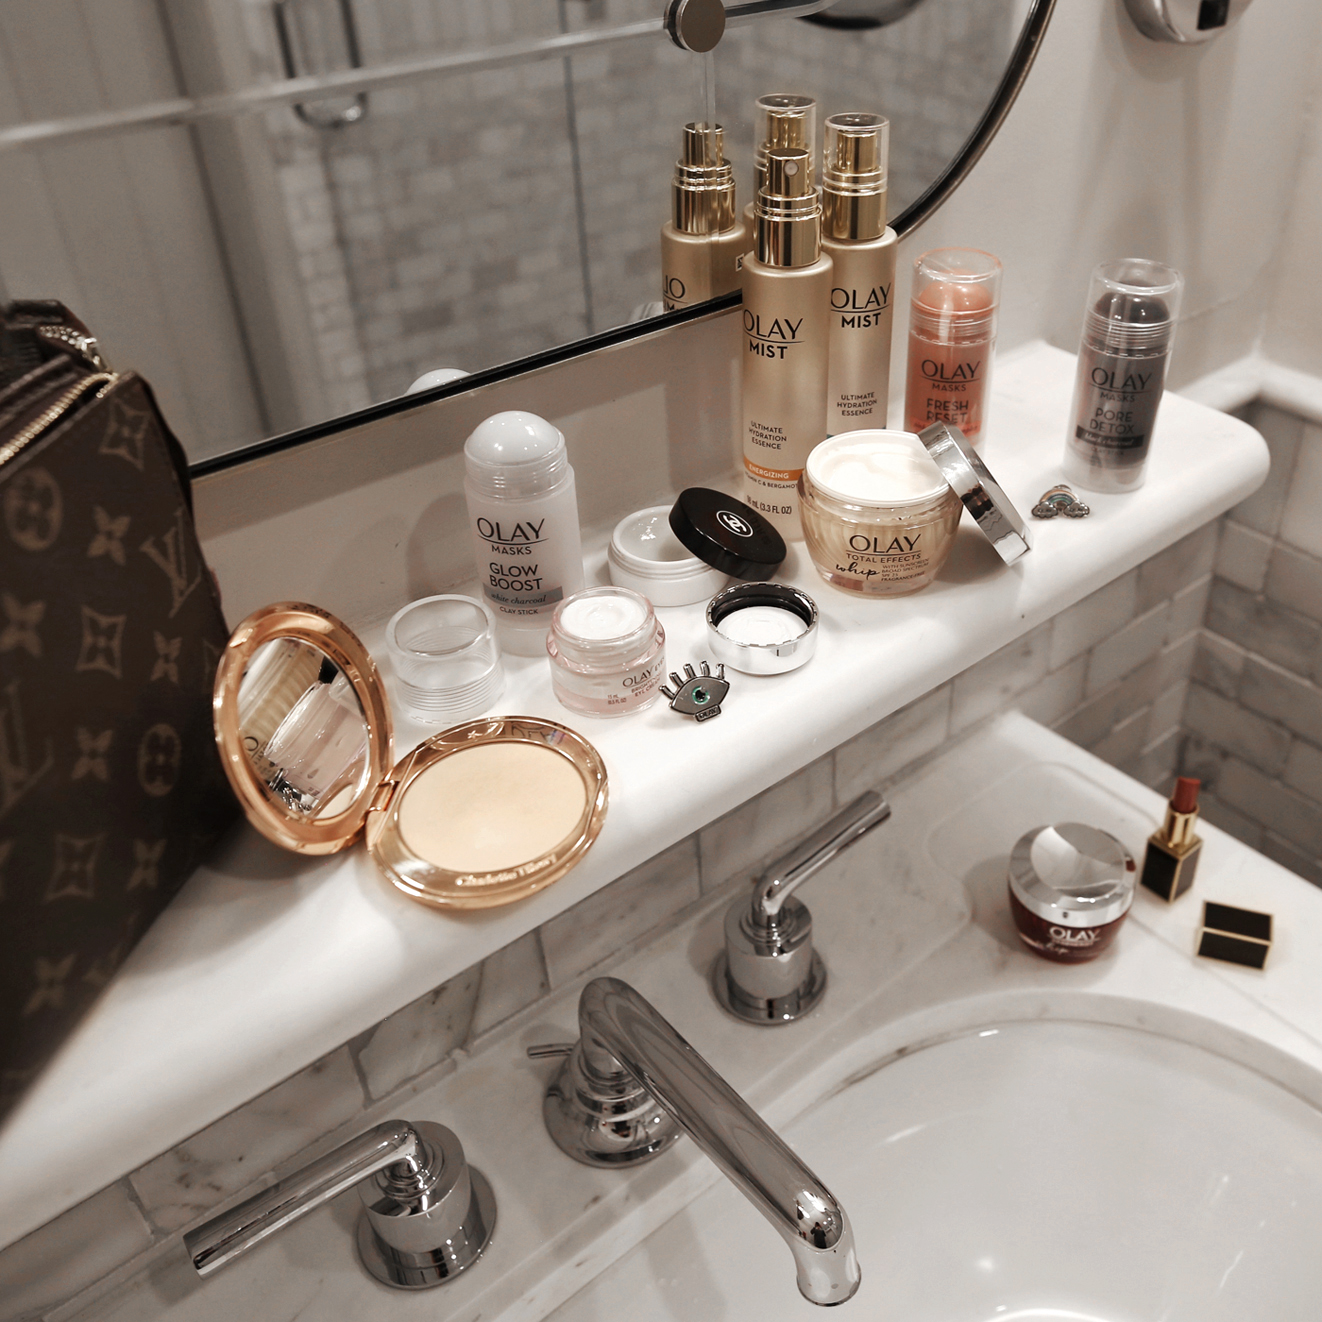 What's on my vanity - Louis Vuitton 19cm clutch, cosmetics bag, Olay Whips, Tom Ford nude lipstick, Olay clay mask, facial mist, bathroom at the Beekman Hotel New York, Nathalie Martin, woahstyle.com.jpg